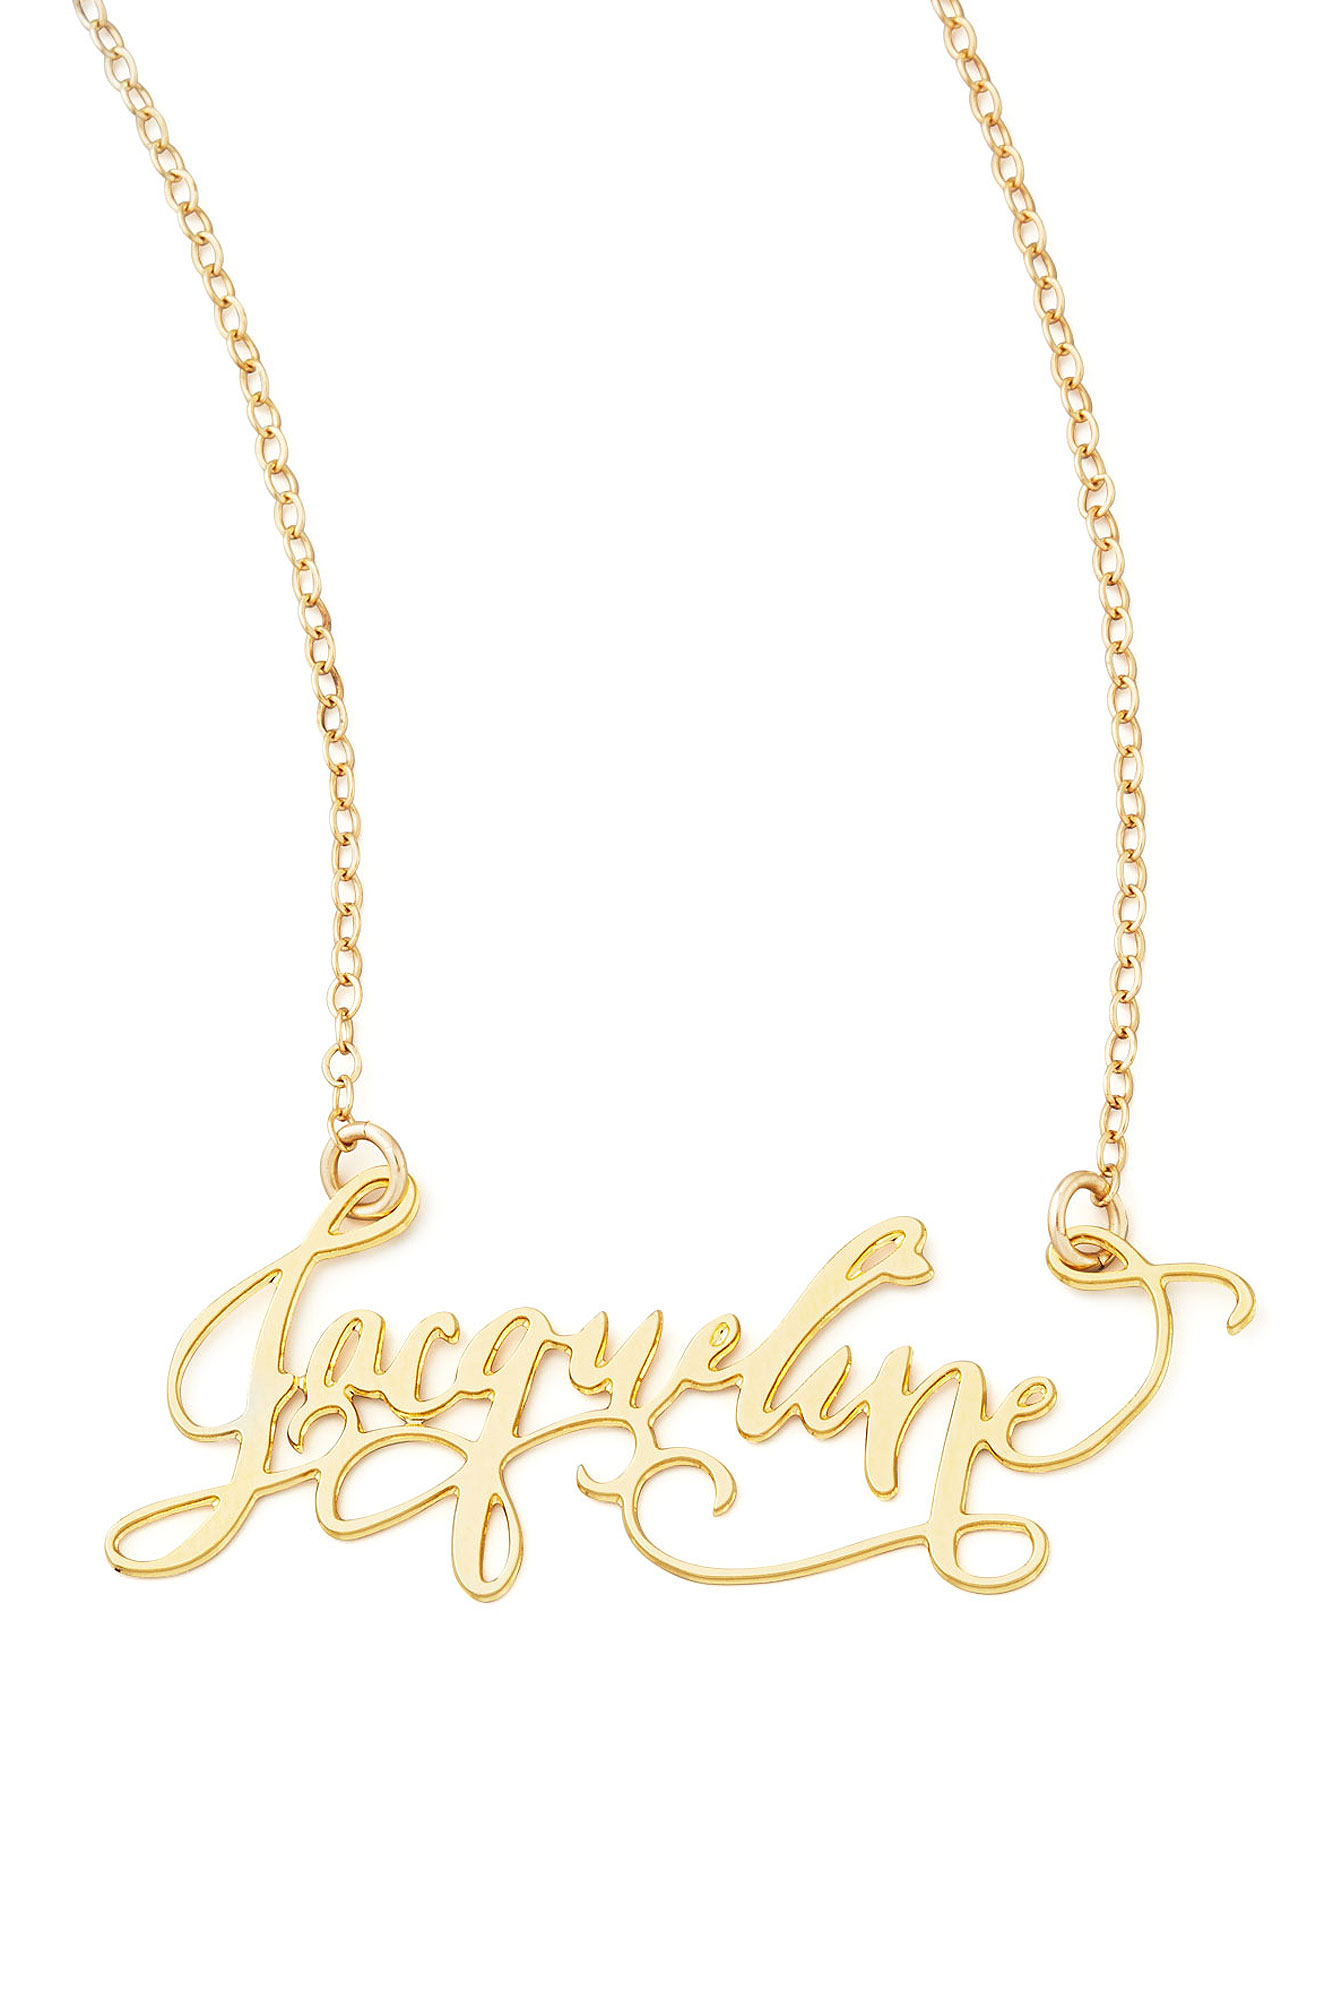 Mothers Day Personal Jewelry GalleryBrevity necklaceCourtesy Neiman Marcus